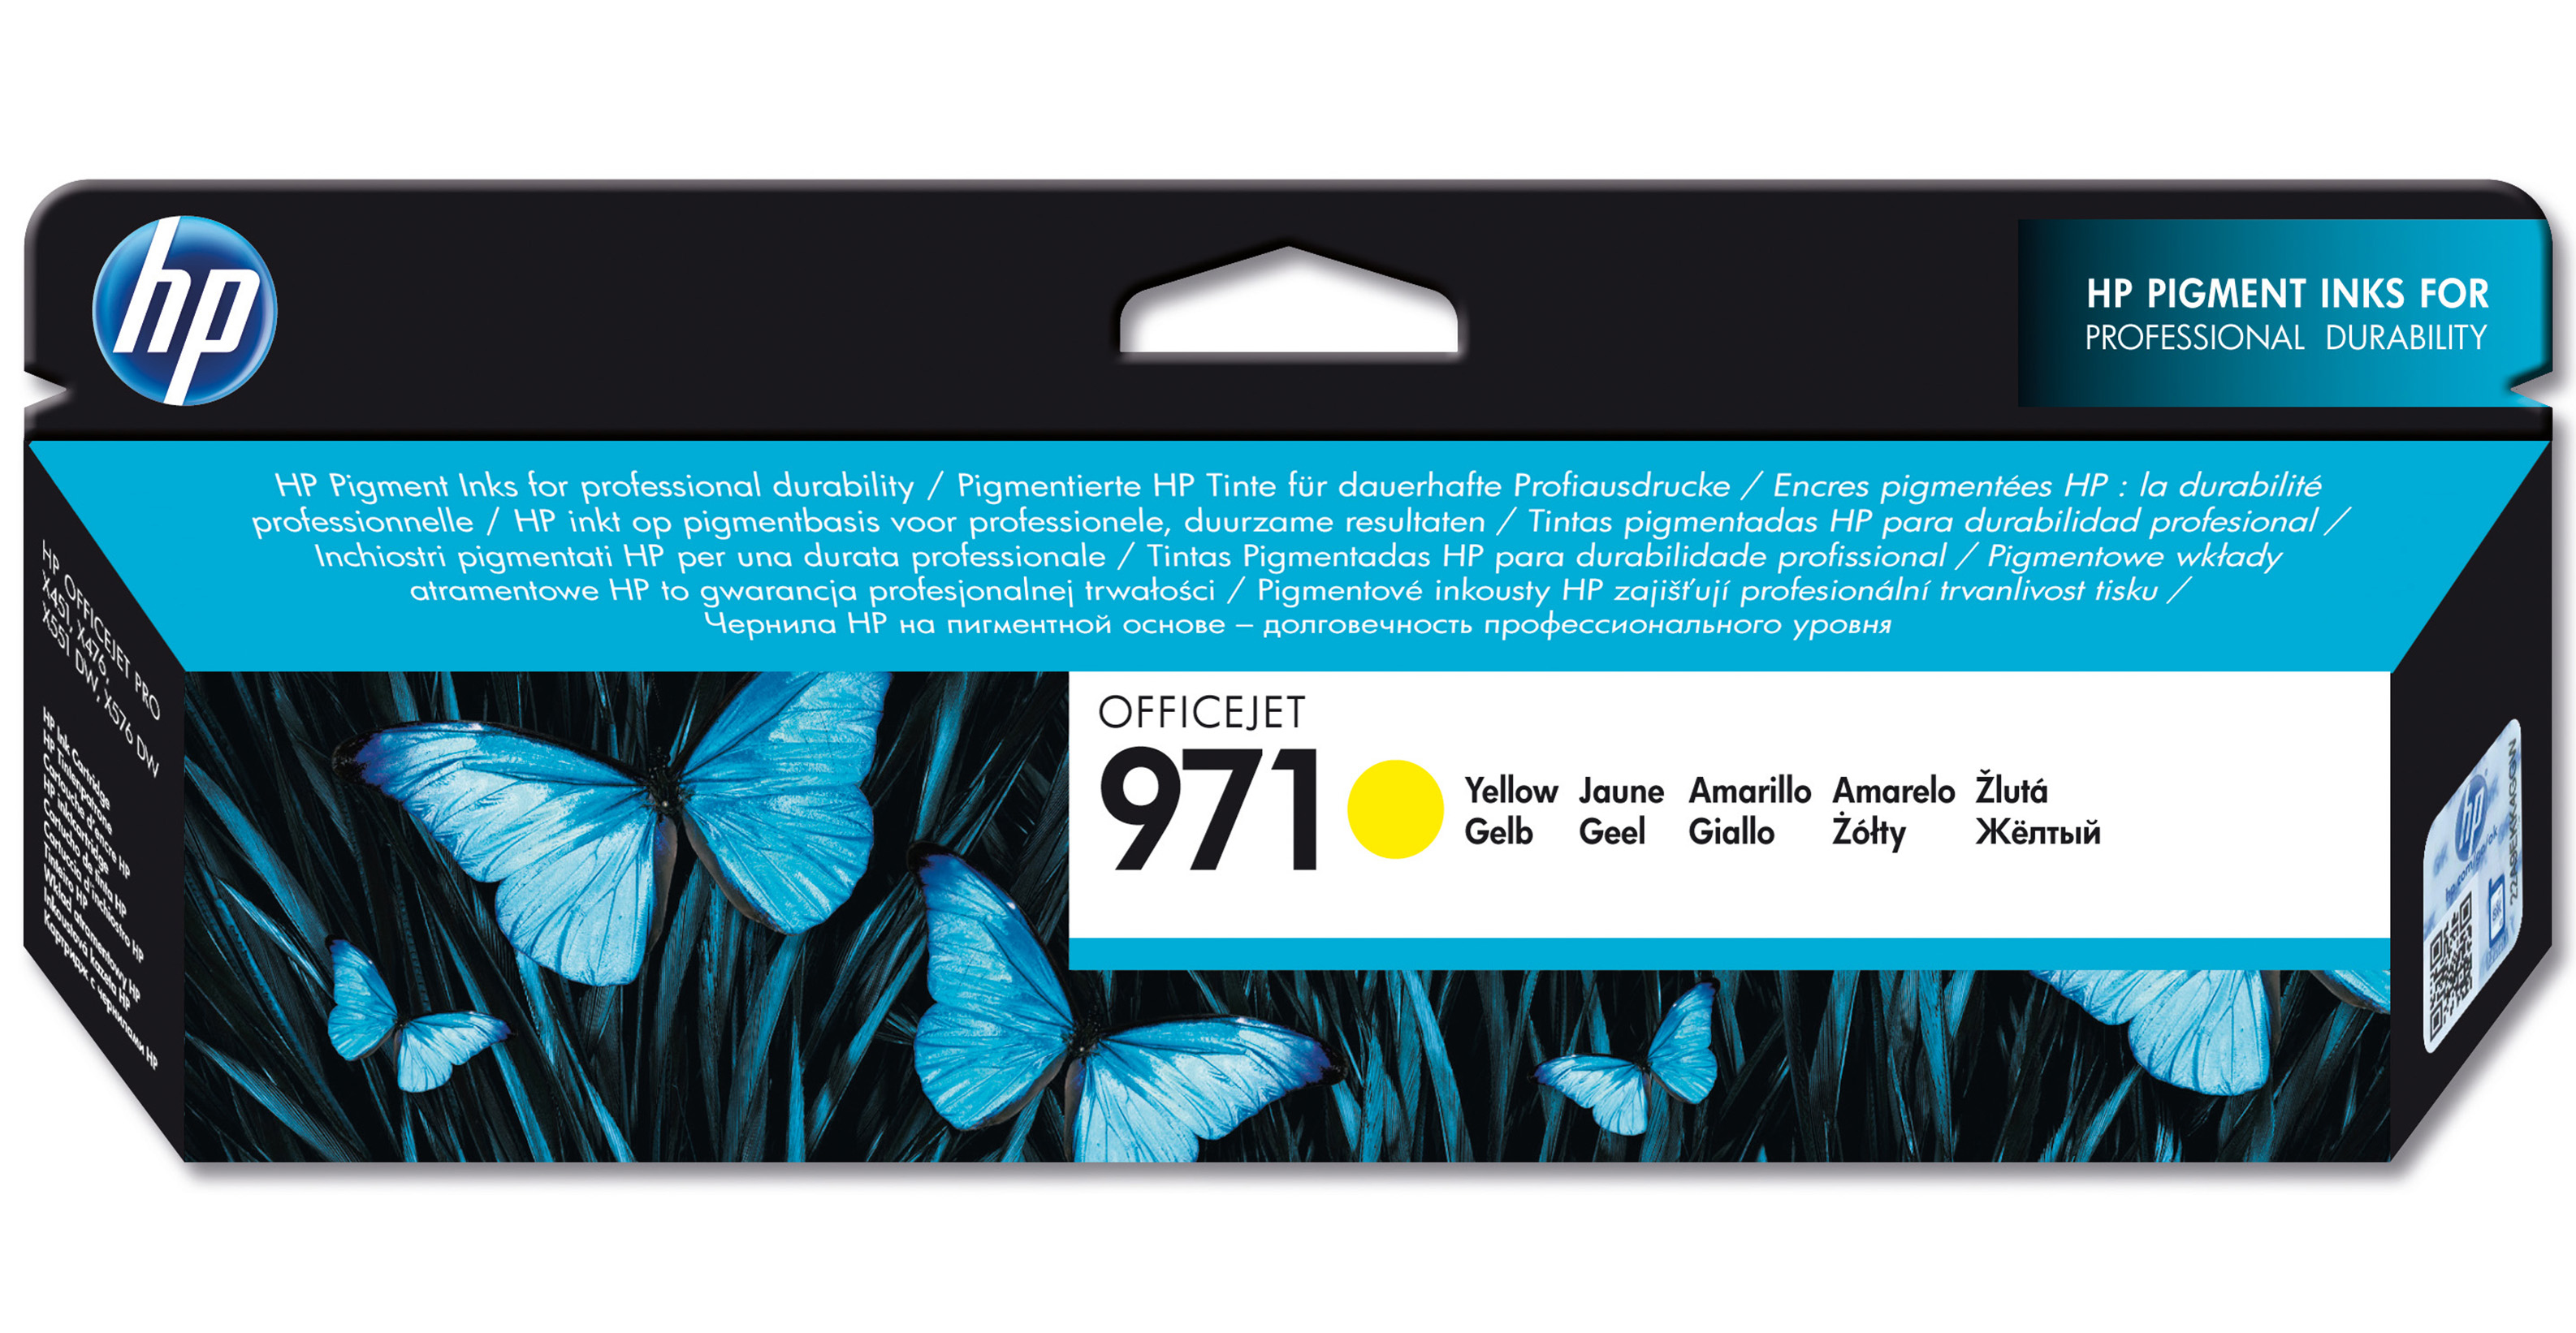 Hpcn624ae      Hp 971 Yellow Officejet        Ink Cartridge                                                - UF01